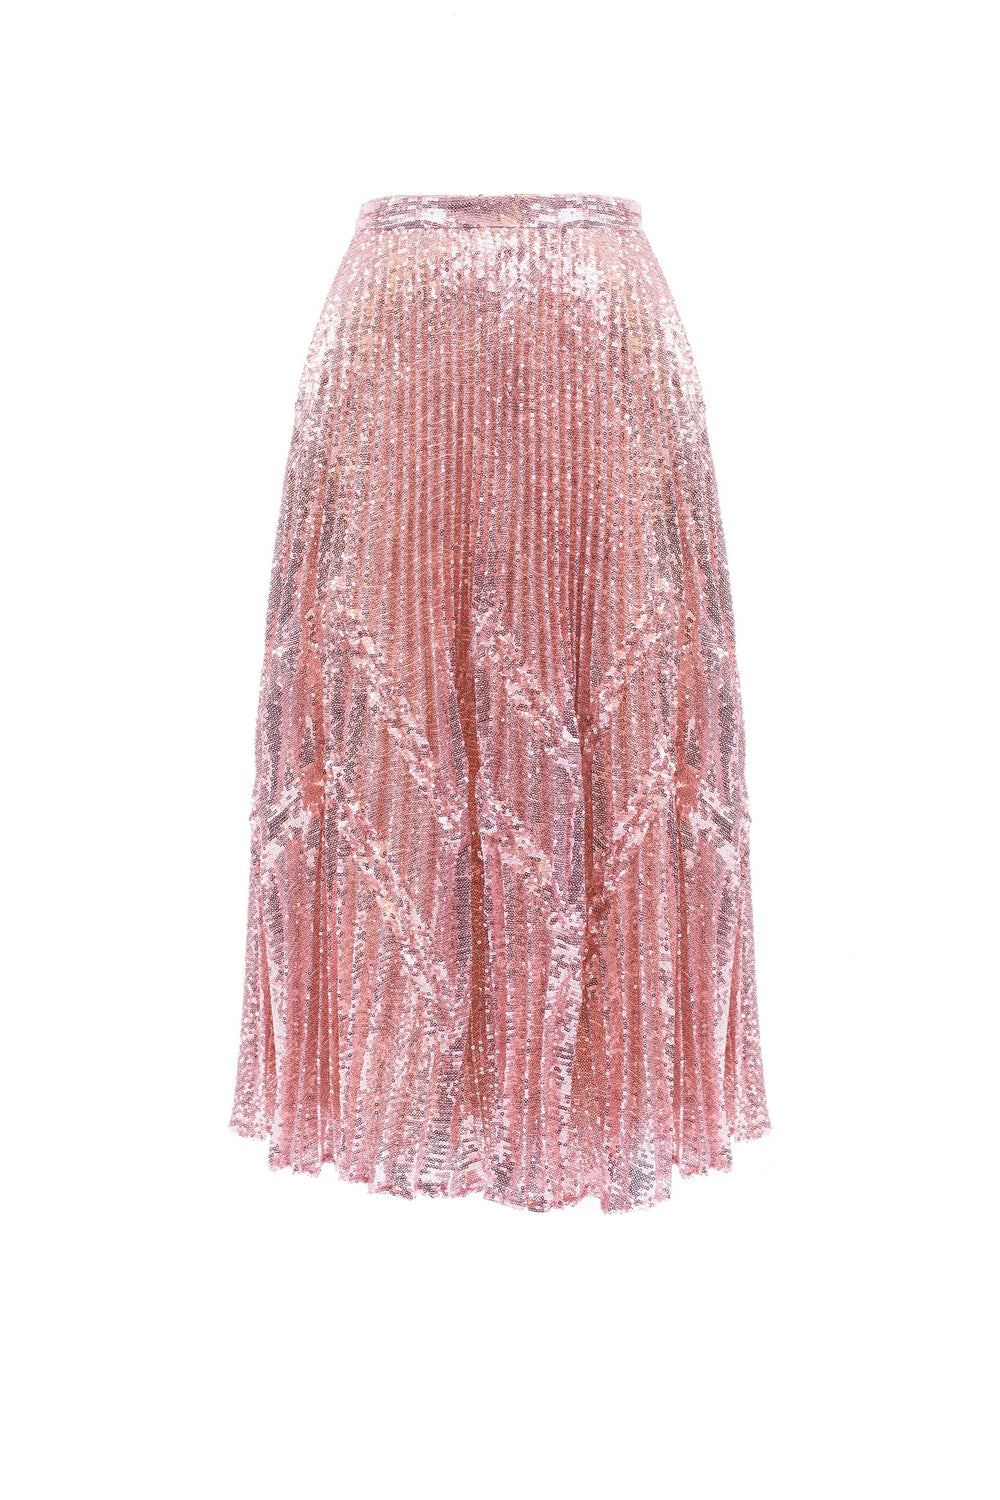 Sequined midi skirt